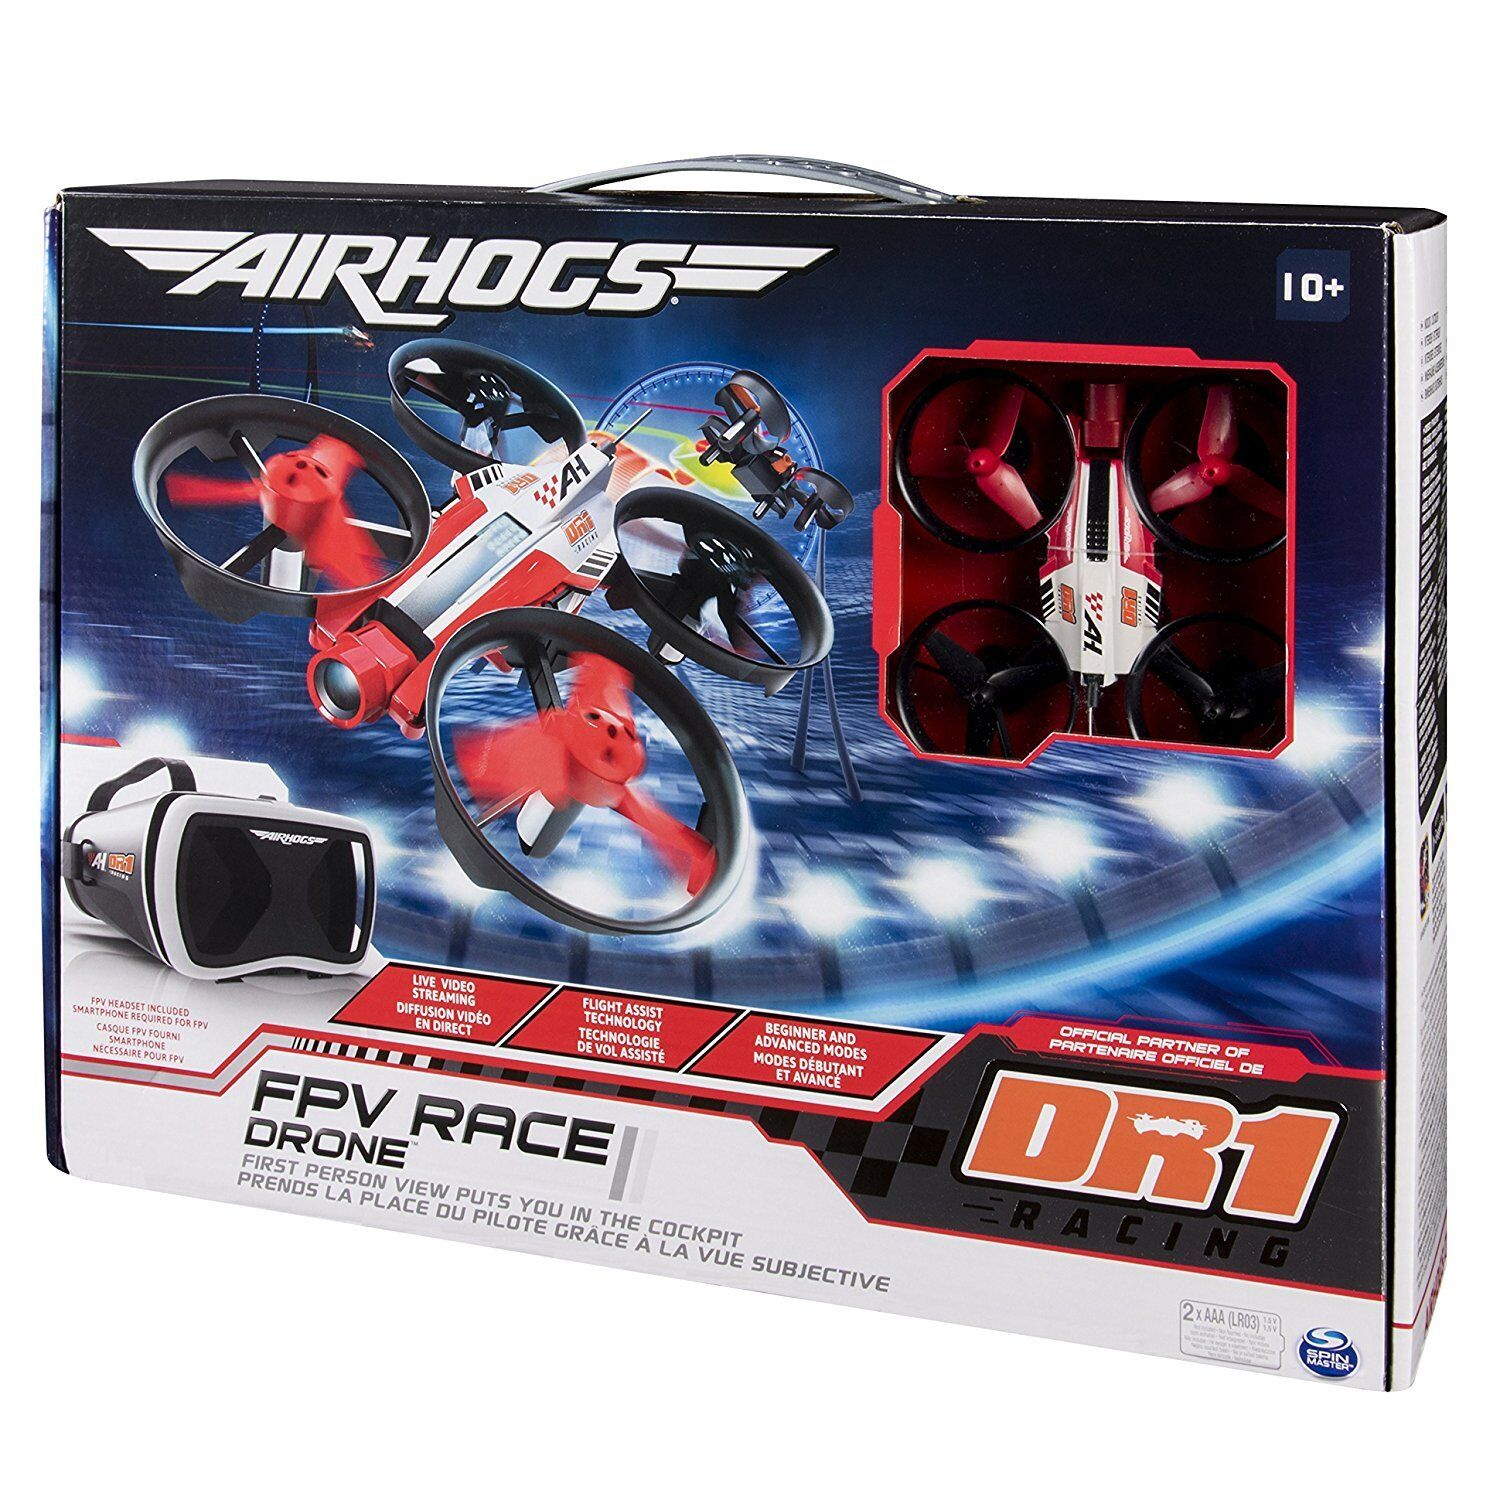 Spinmaster Air Hogs DR1 FPV Micro Race Drone Accessory Age 10+ Head set included